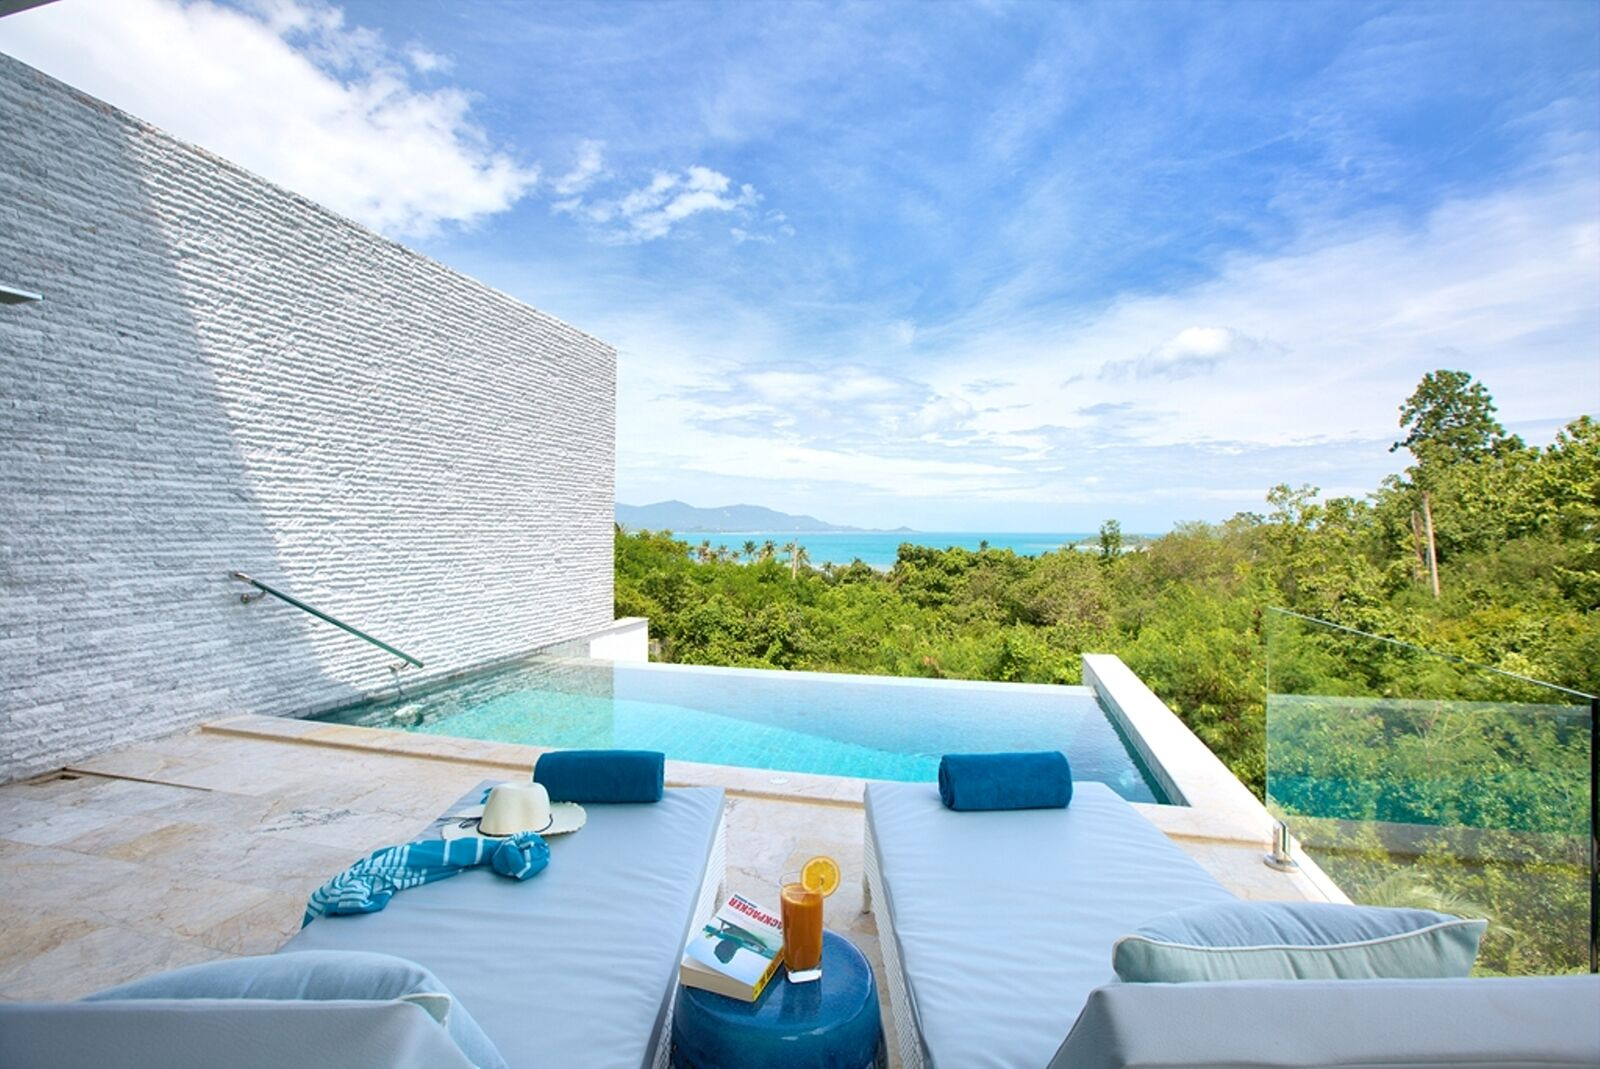 4 Bedroom Sea View Villa with Private Pool at Tongson Bay Koh Samui